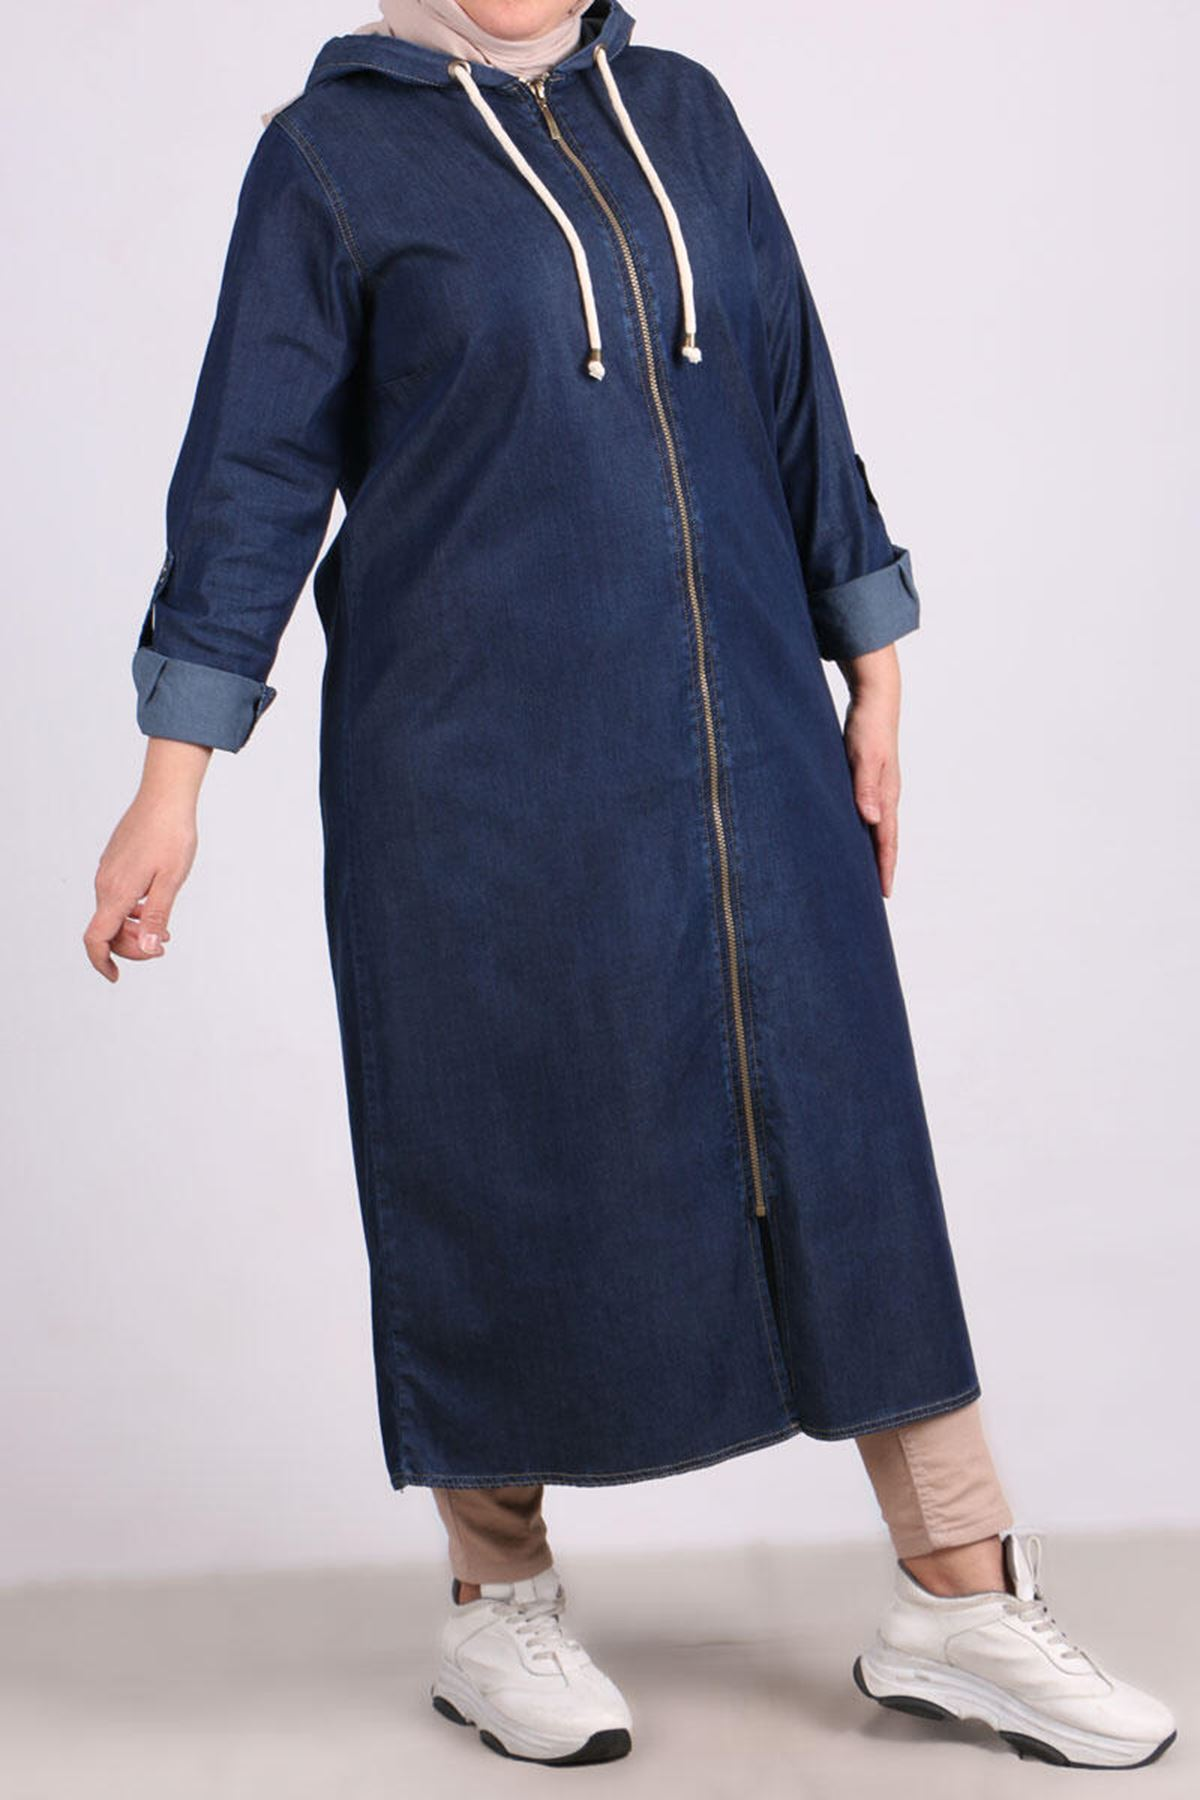 3146 Plus Size Hooded Jeans Coat - Navy Blue